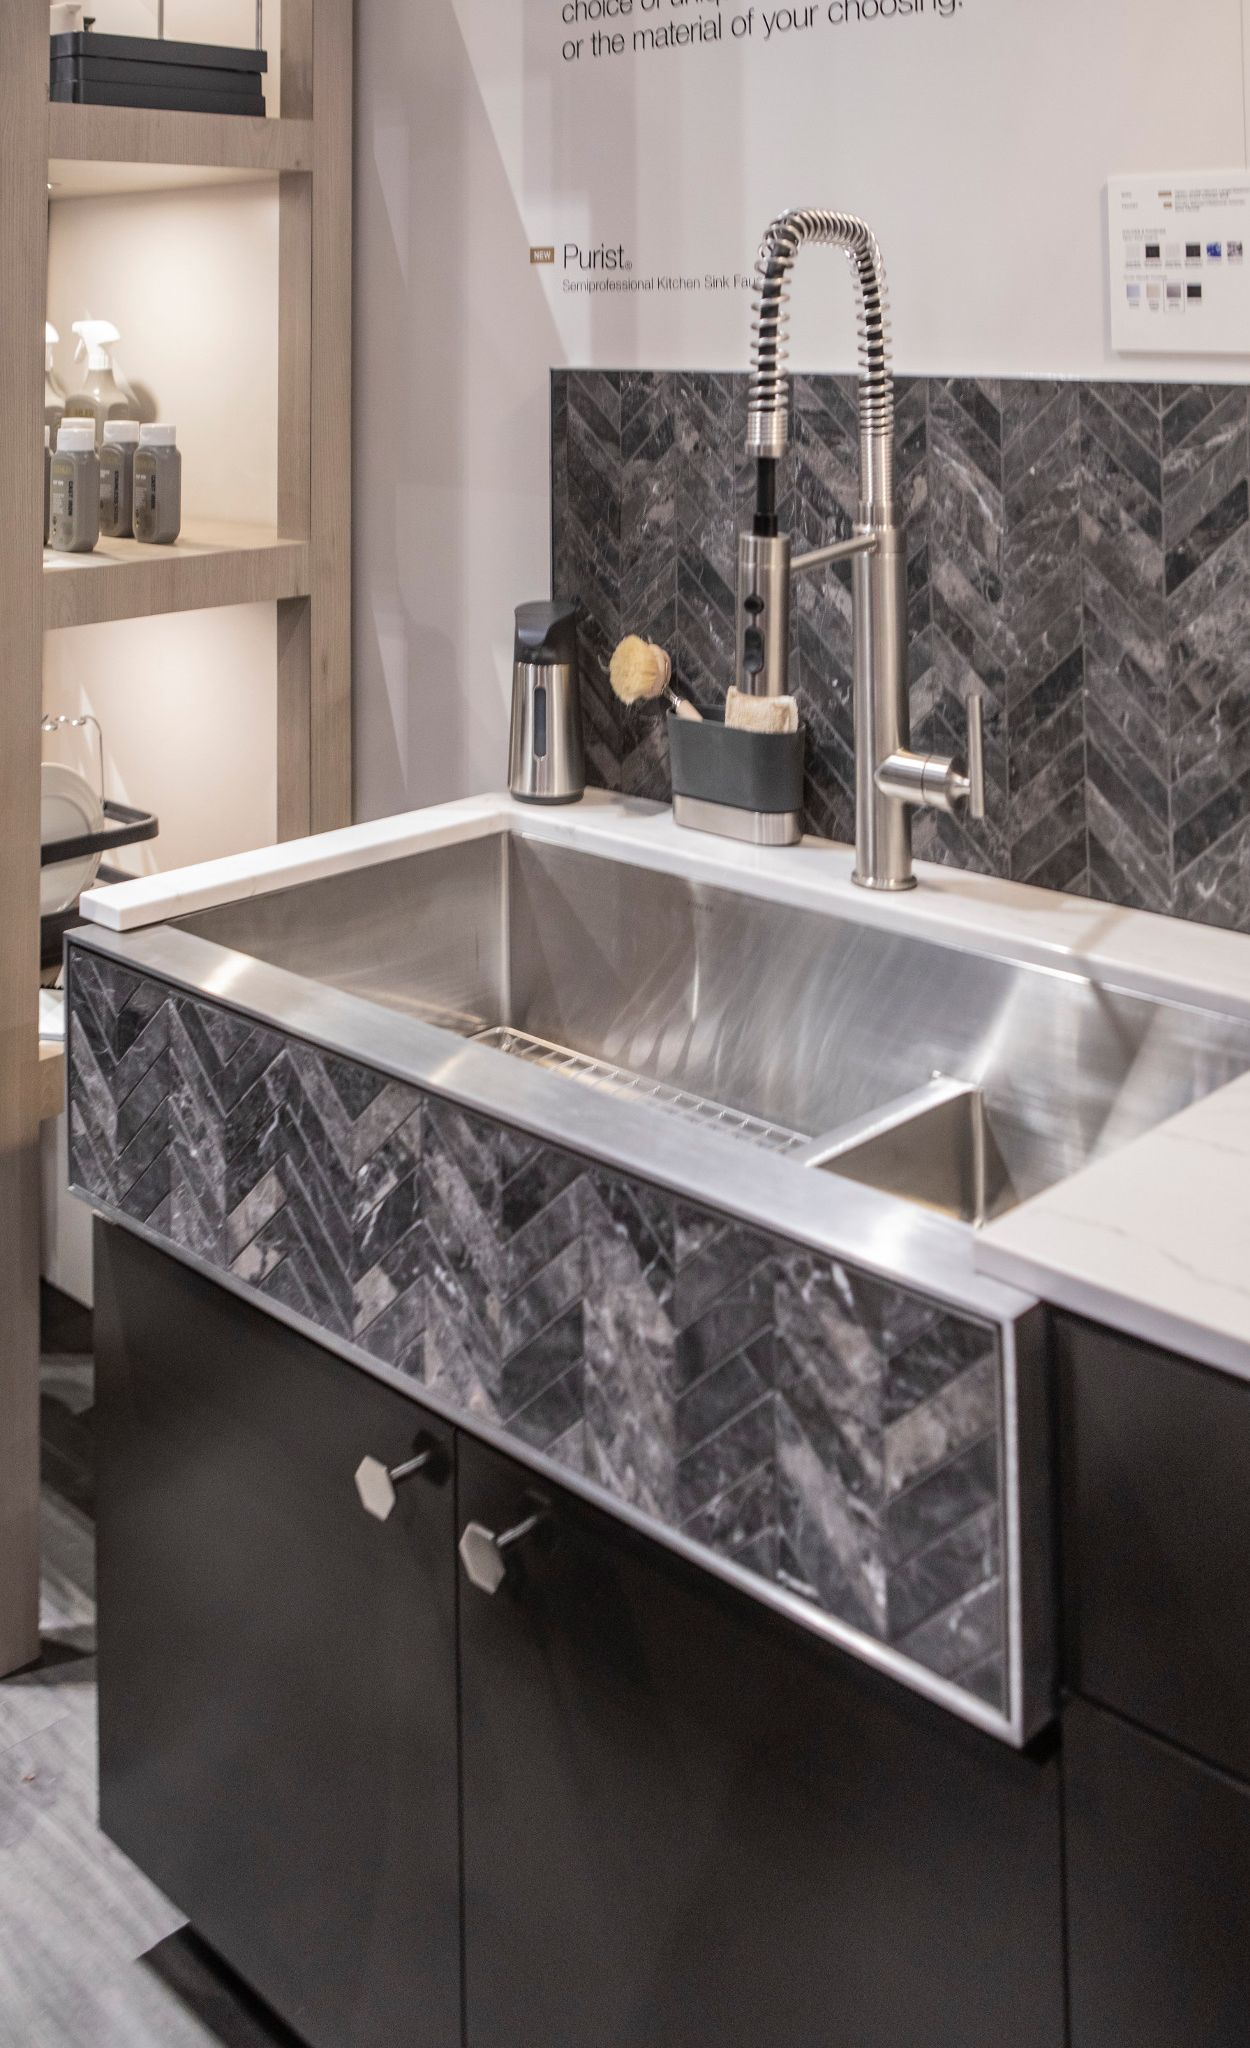 Custom a herringbone pattern sink apron and Cambria Ella countertops.